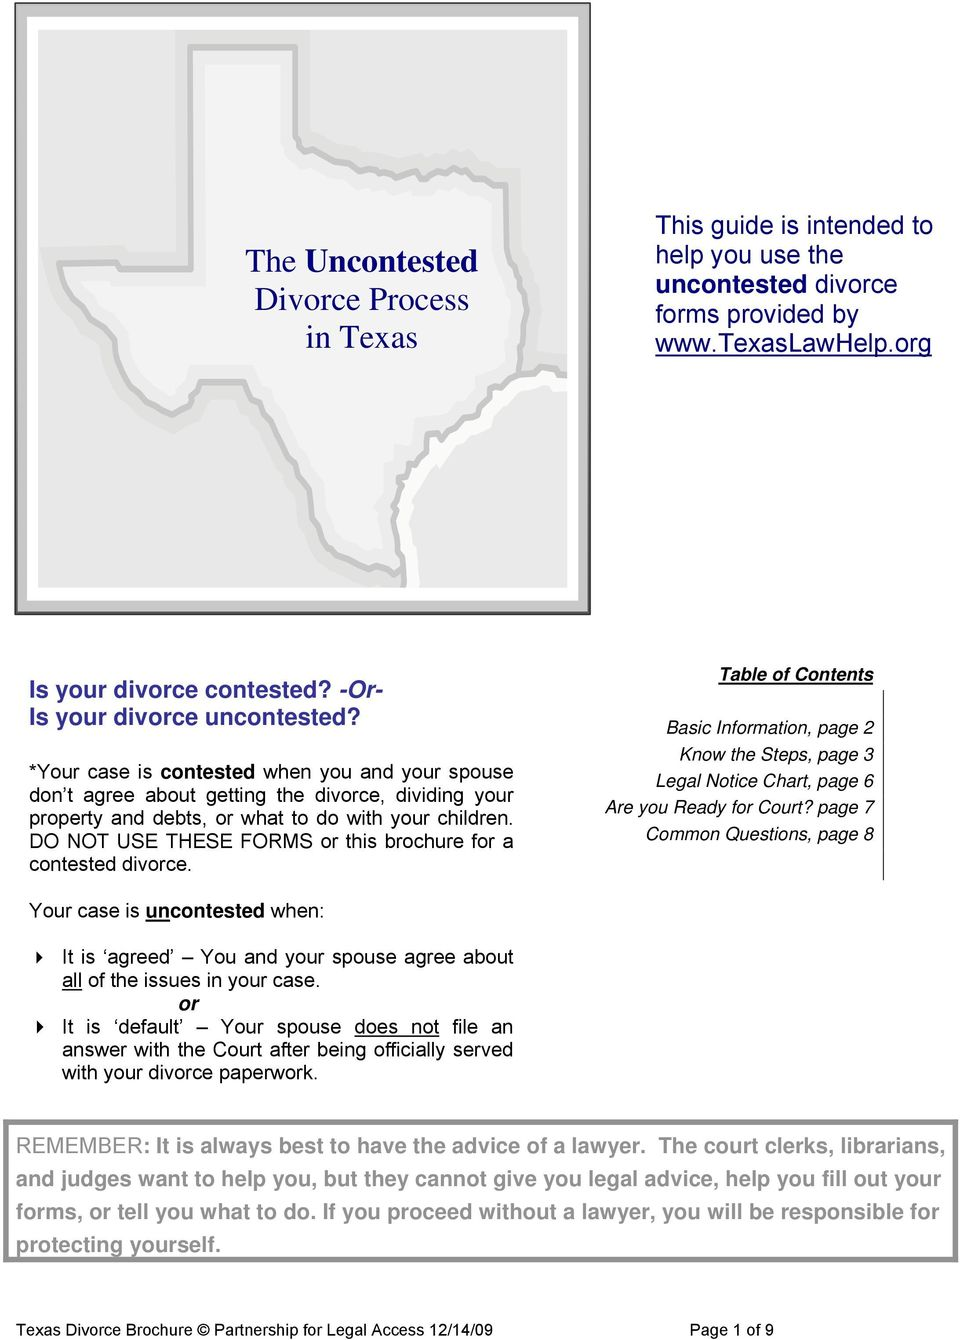 The uncontested divorce process in texas pdf do not use these forms or this brochure for a contested divorce table of contents solutioingenieria Gallery